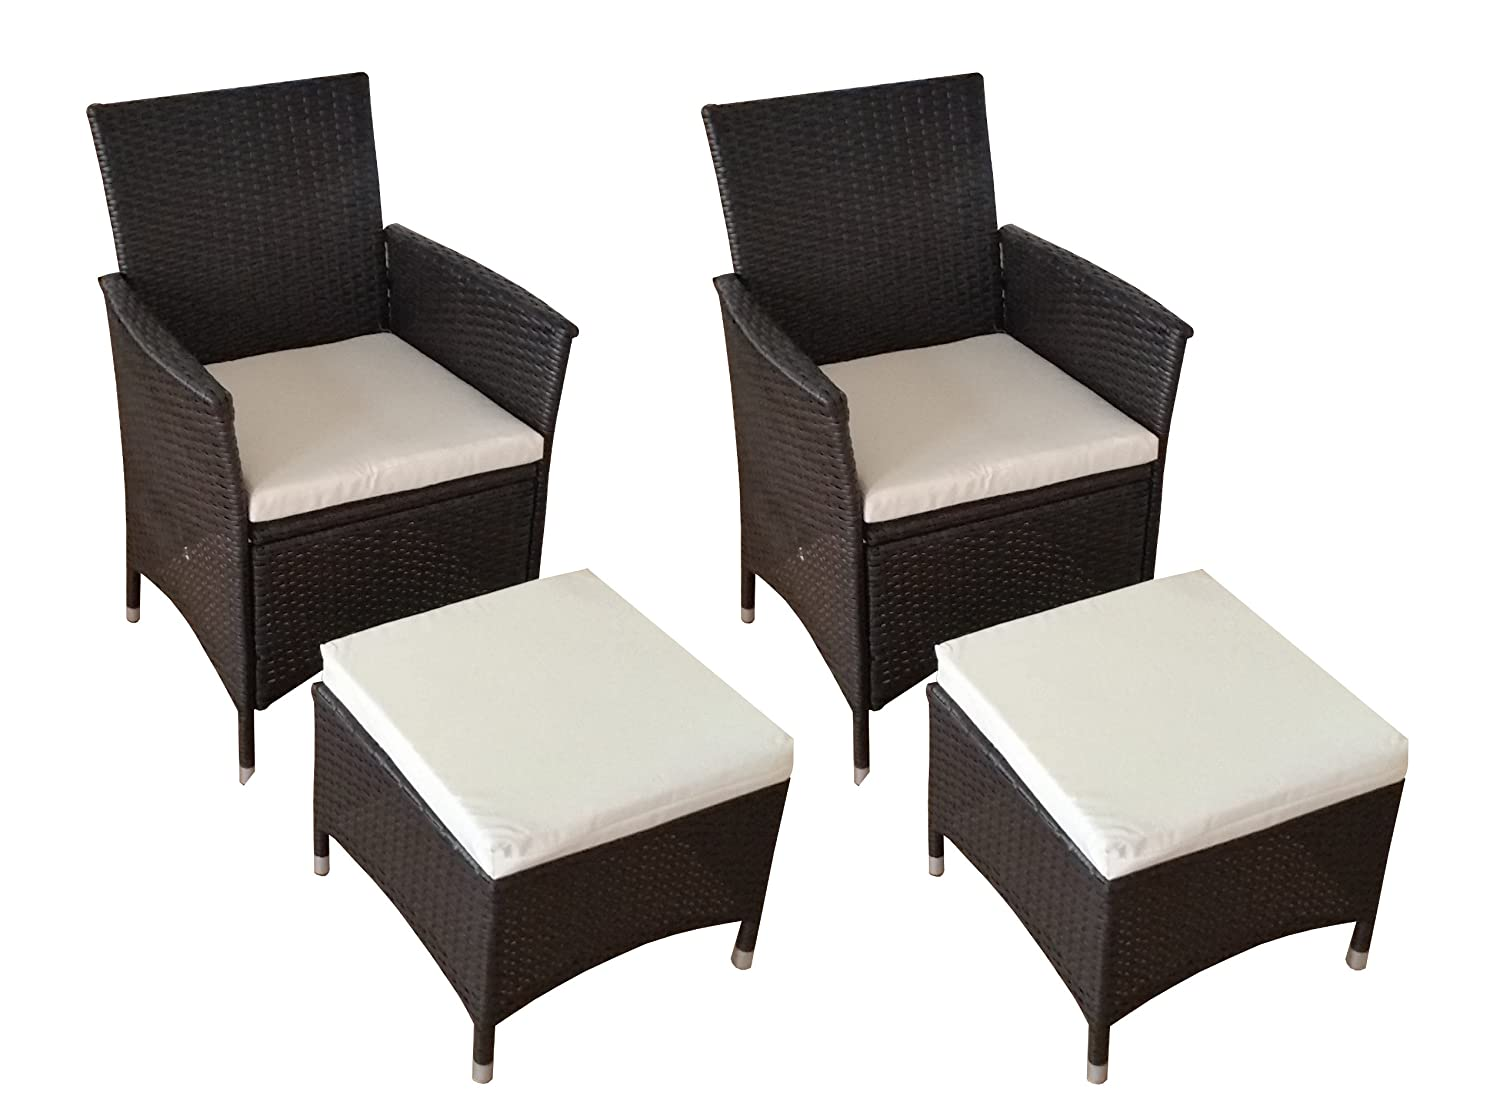 poly rattan 2er set stuhl und 2er set hocker braun online bestellen. Black Bedroom Furniture Sets. Home Design Ideas